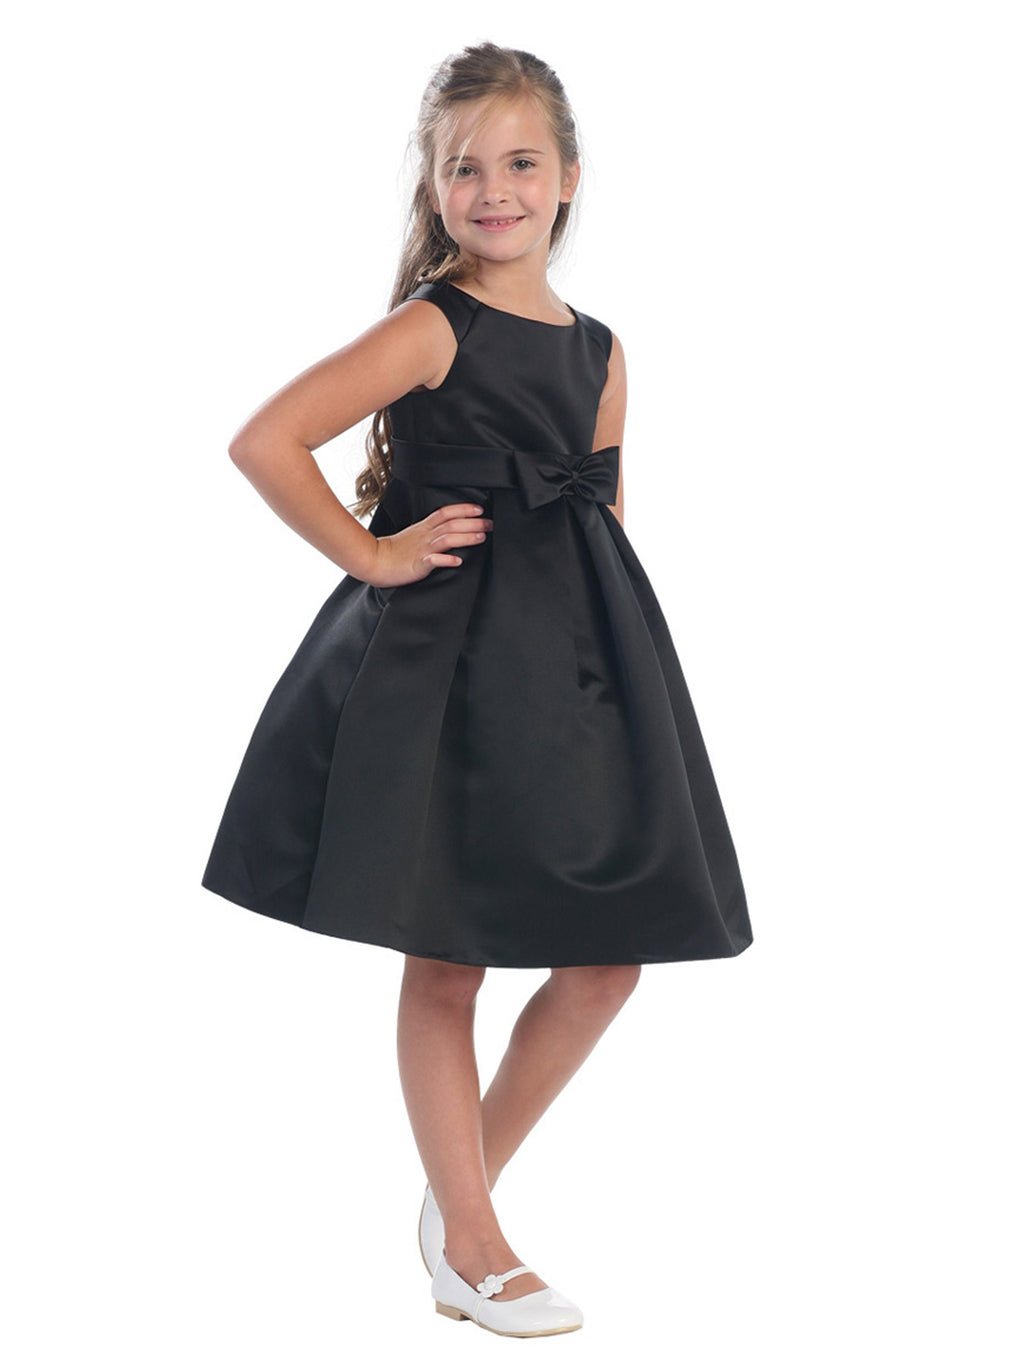 Black Satin A-line Dress with Portrait Neck and Pleated Skirt